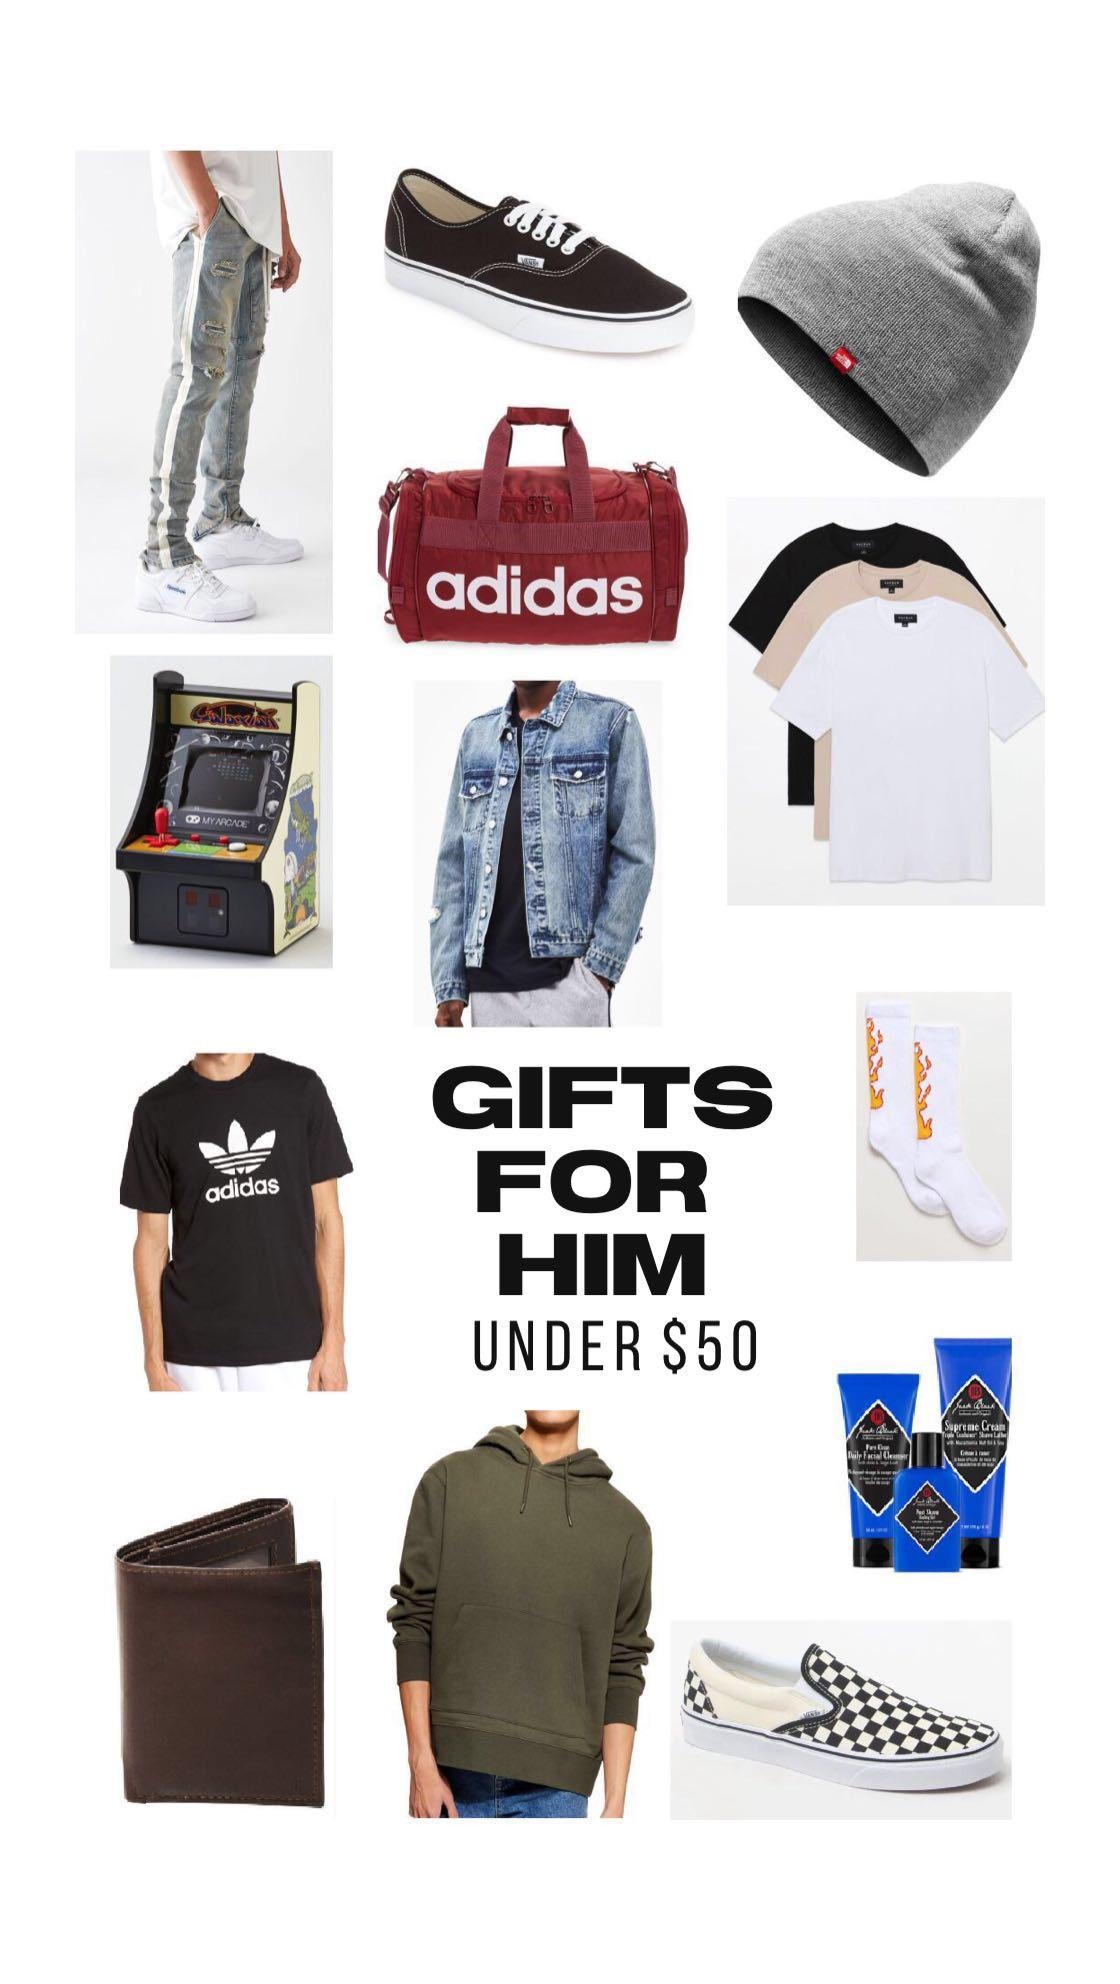 GIFTS FOR HIM – UNDER $50